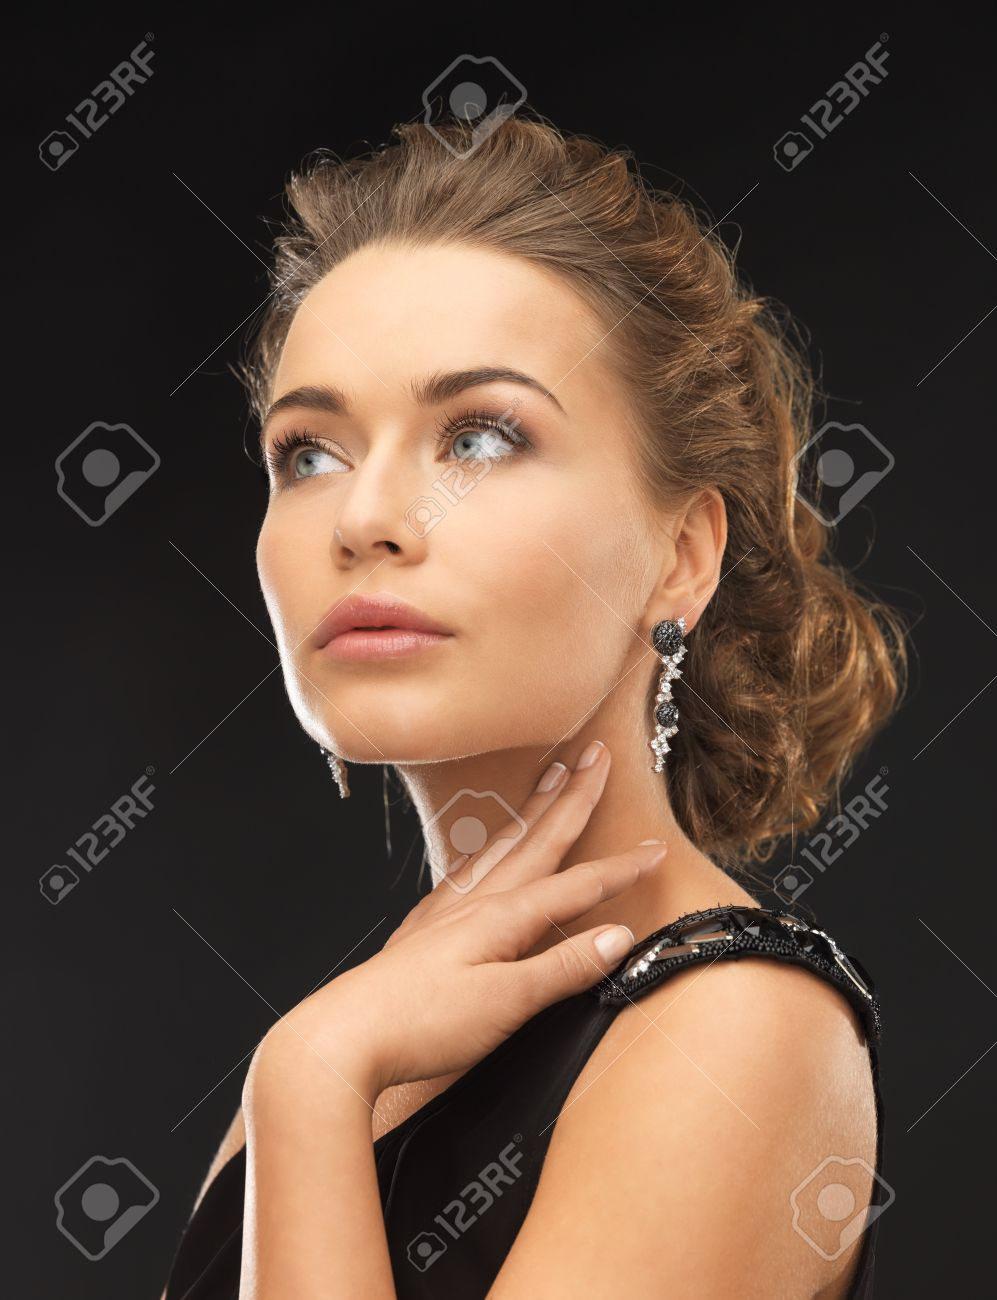 beautiful woman in evening dress wearing diamond earrings Stock Photo - 19347206